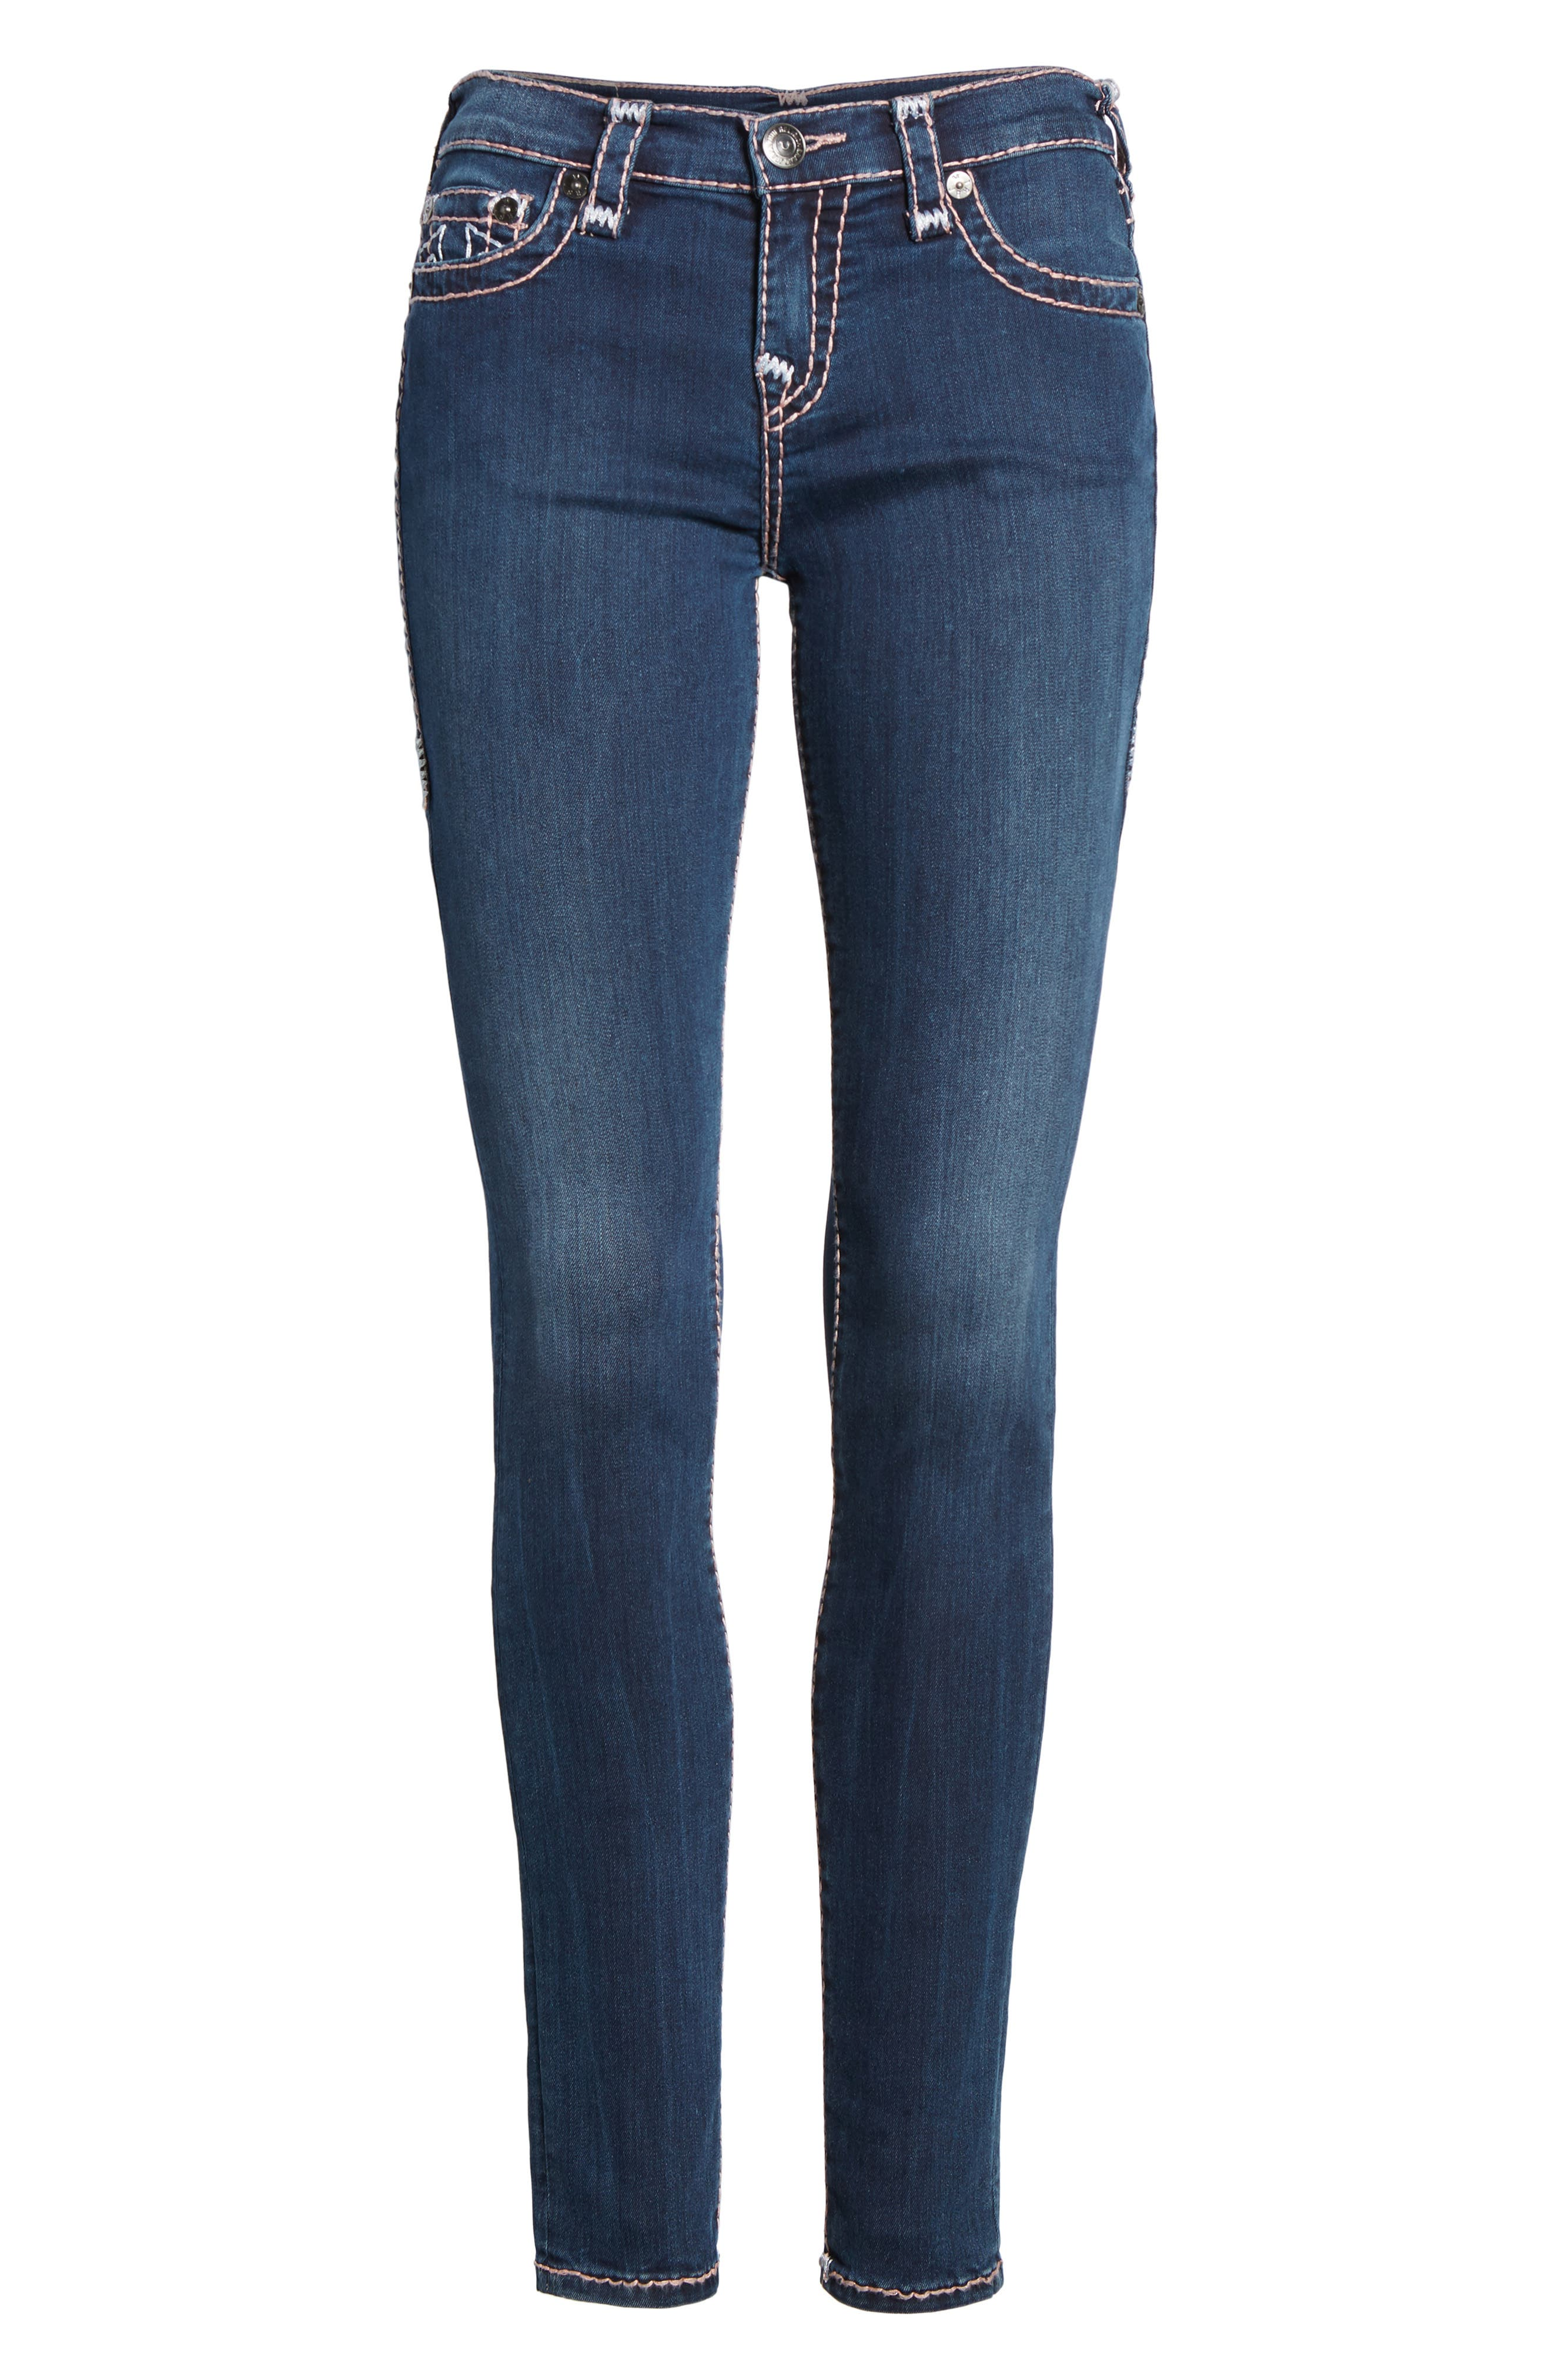 Halle Super Skinny Jeans,                             Alternate thumbnail 7, color,                             400